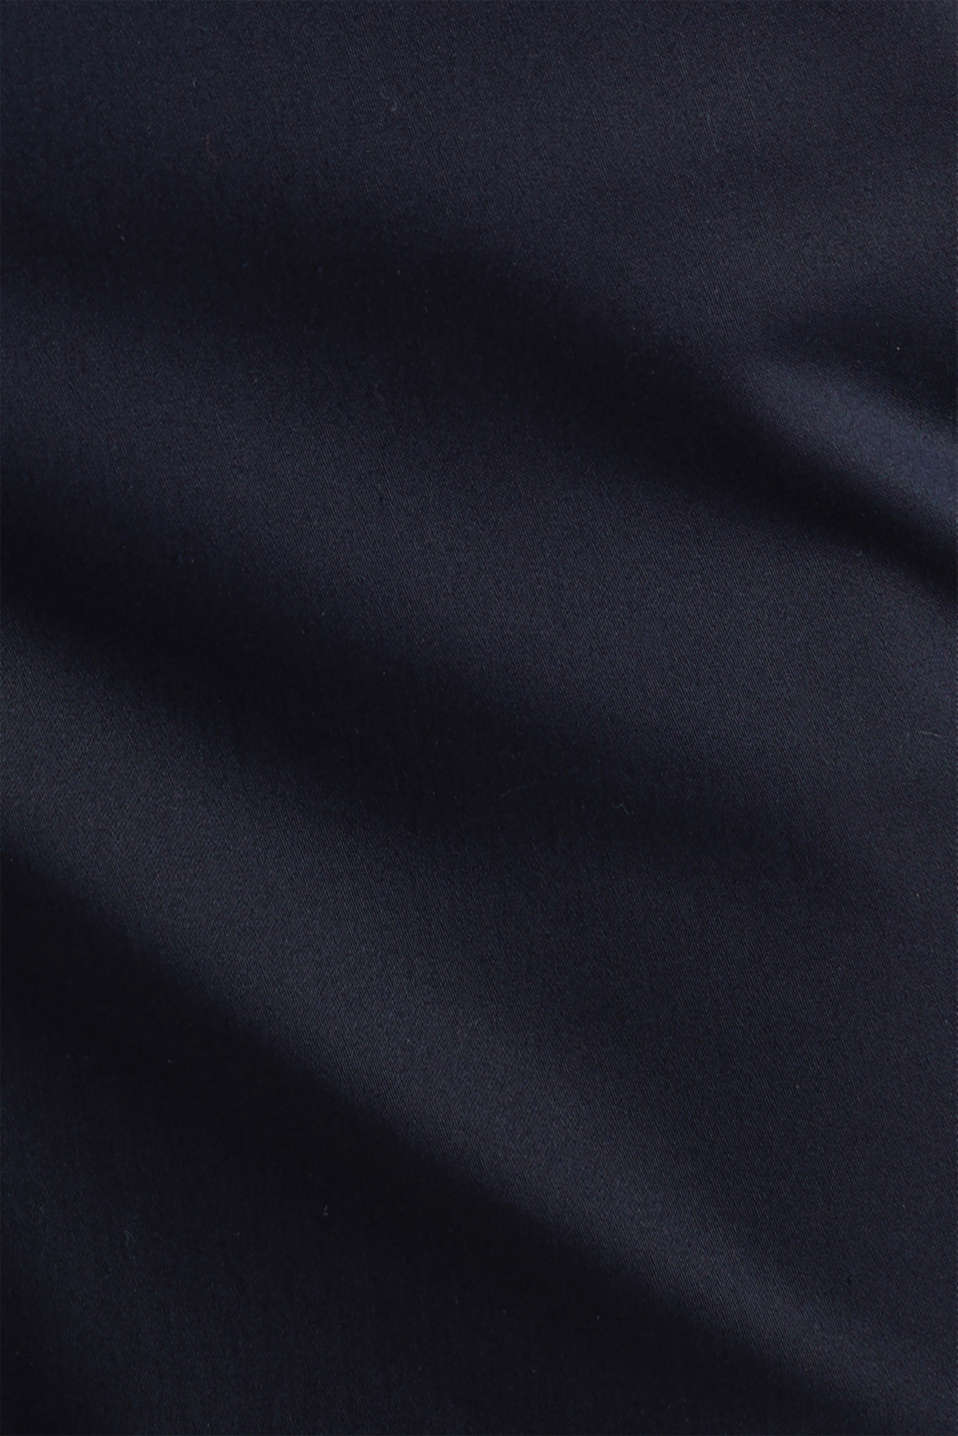 Stretchy satined Bermuda shorts, NAVY, detail image number 4